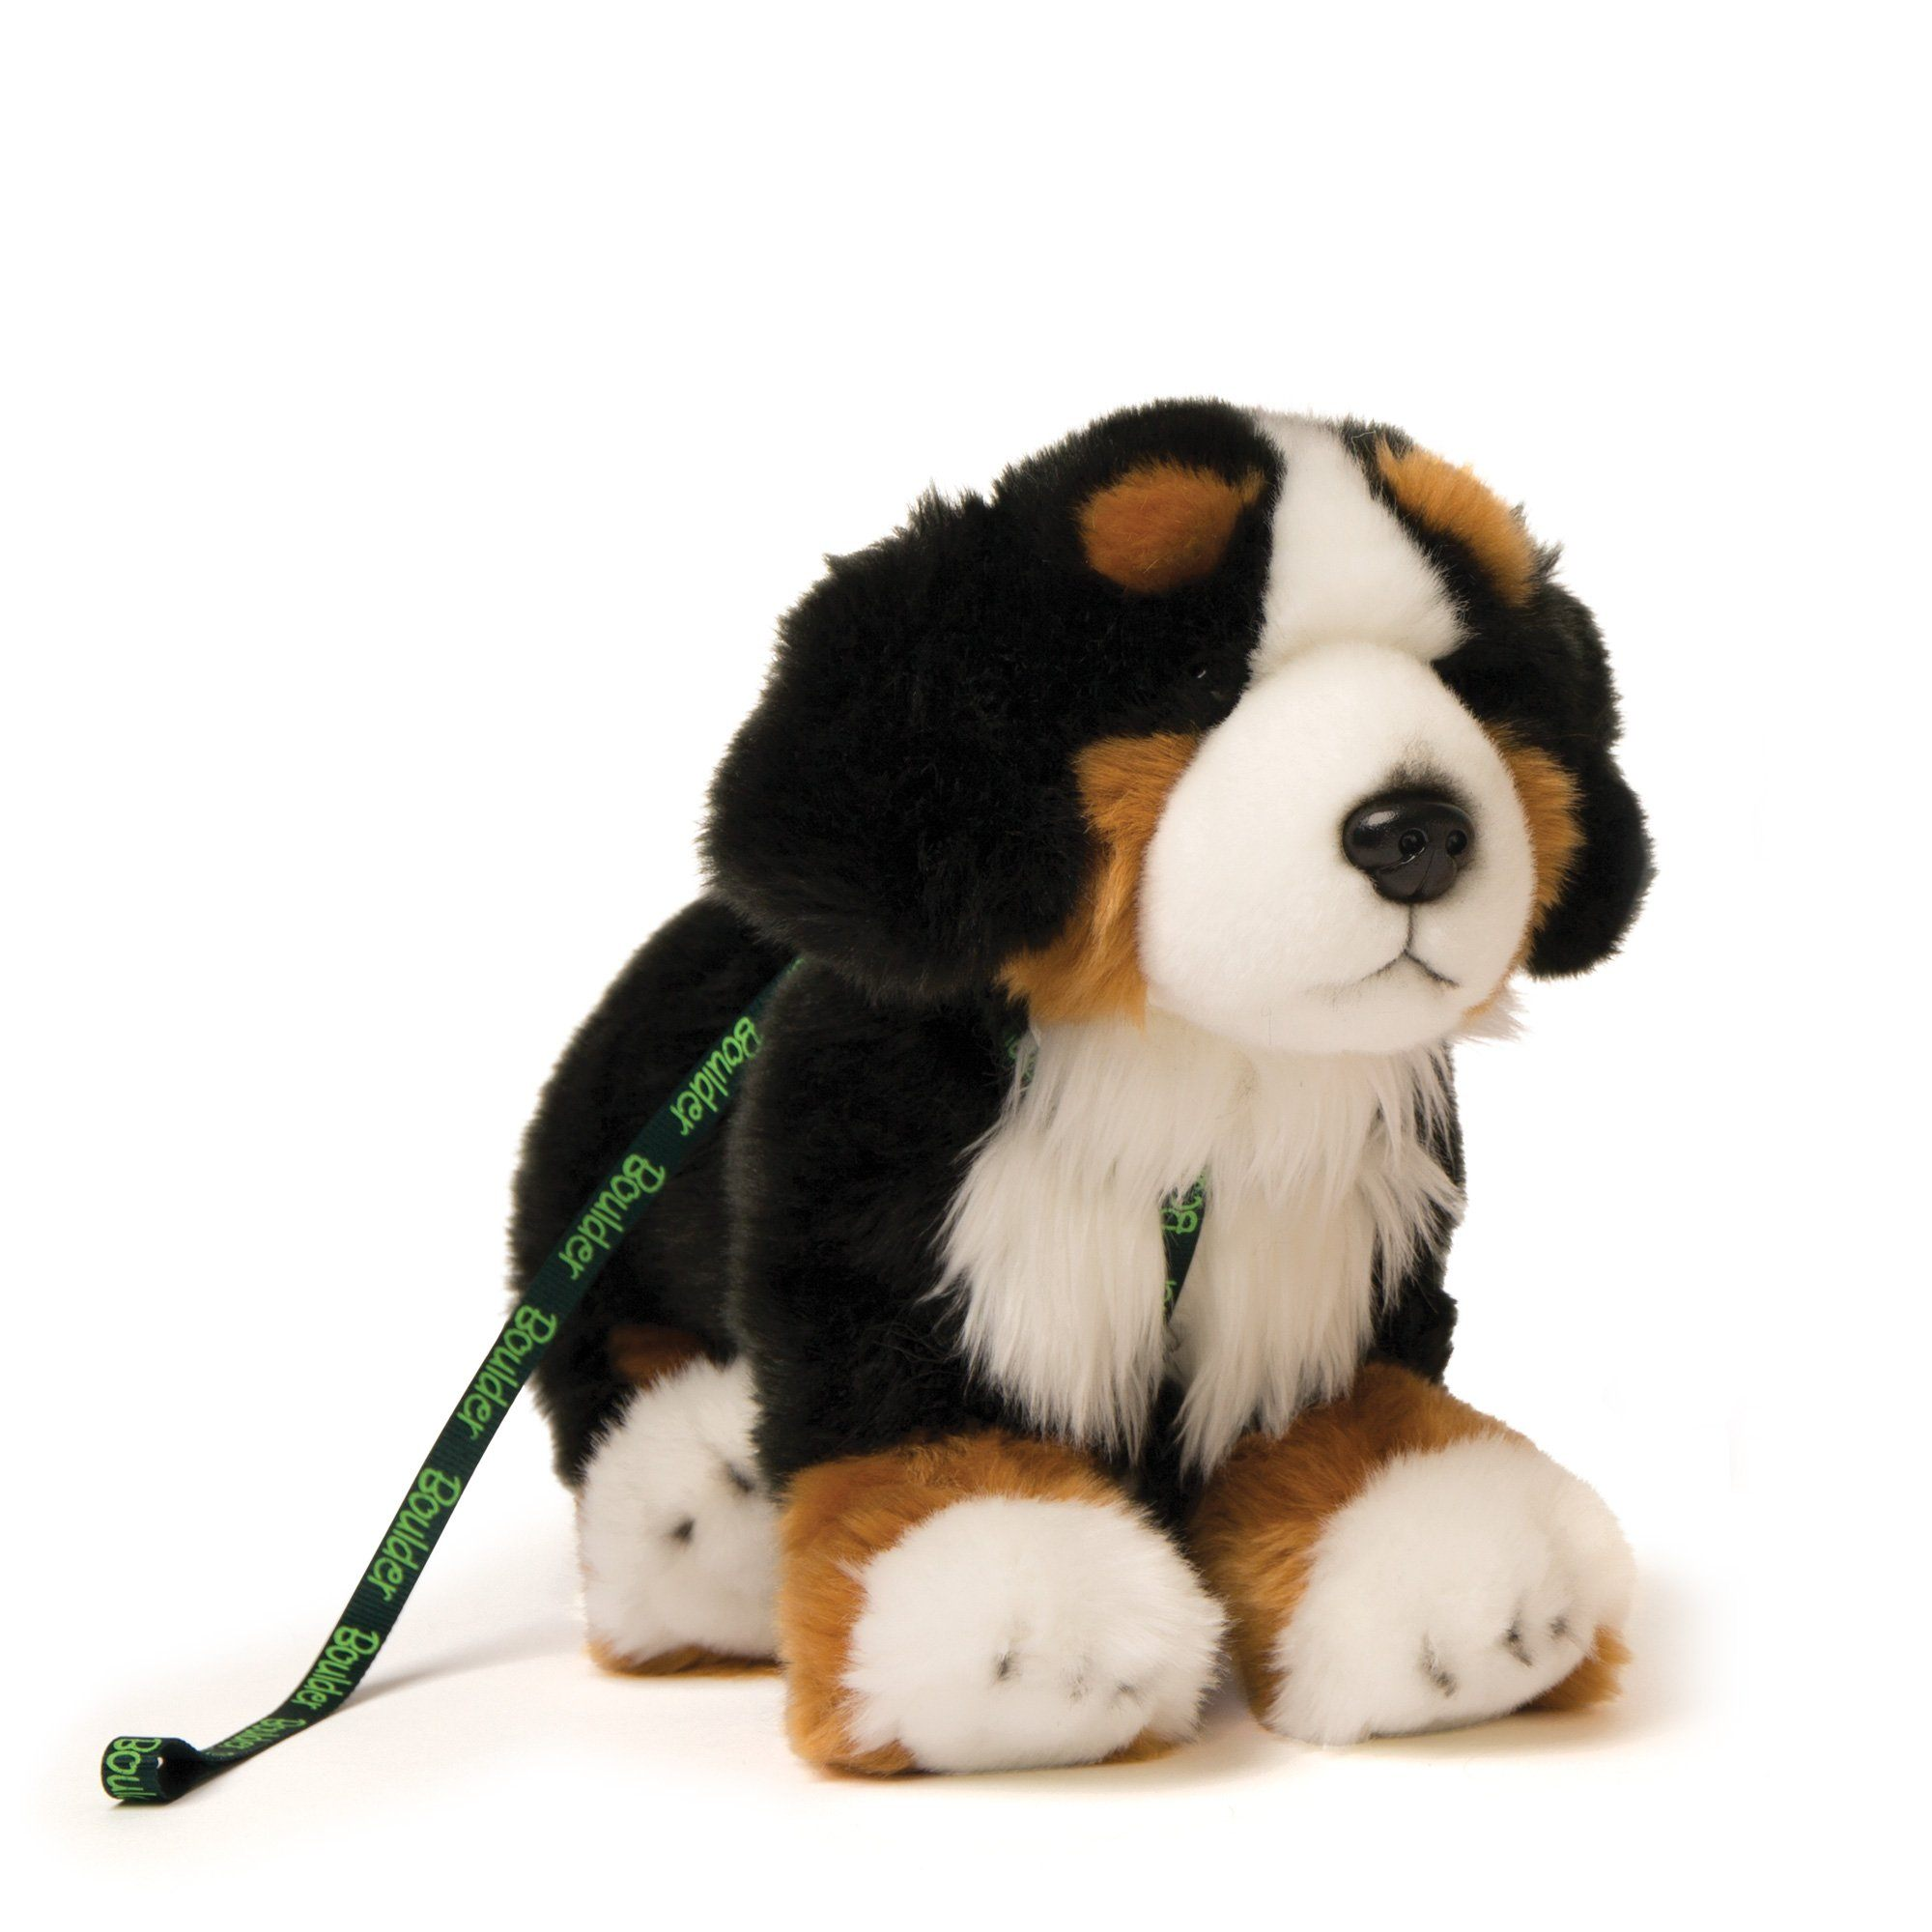 Boulder Taryn S Bernese Mountain Dog Kt25 Plush Dog For 18 Inch Doll Maplelea